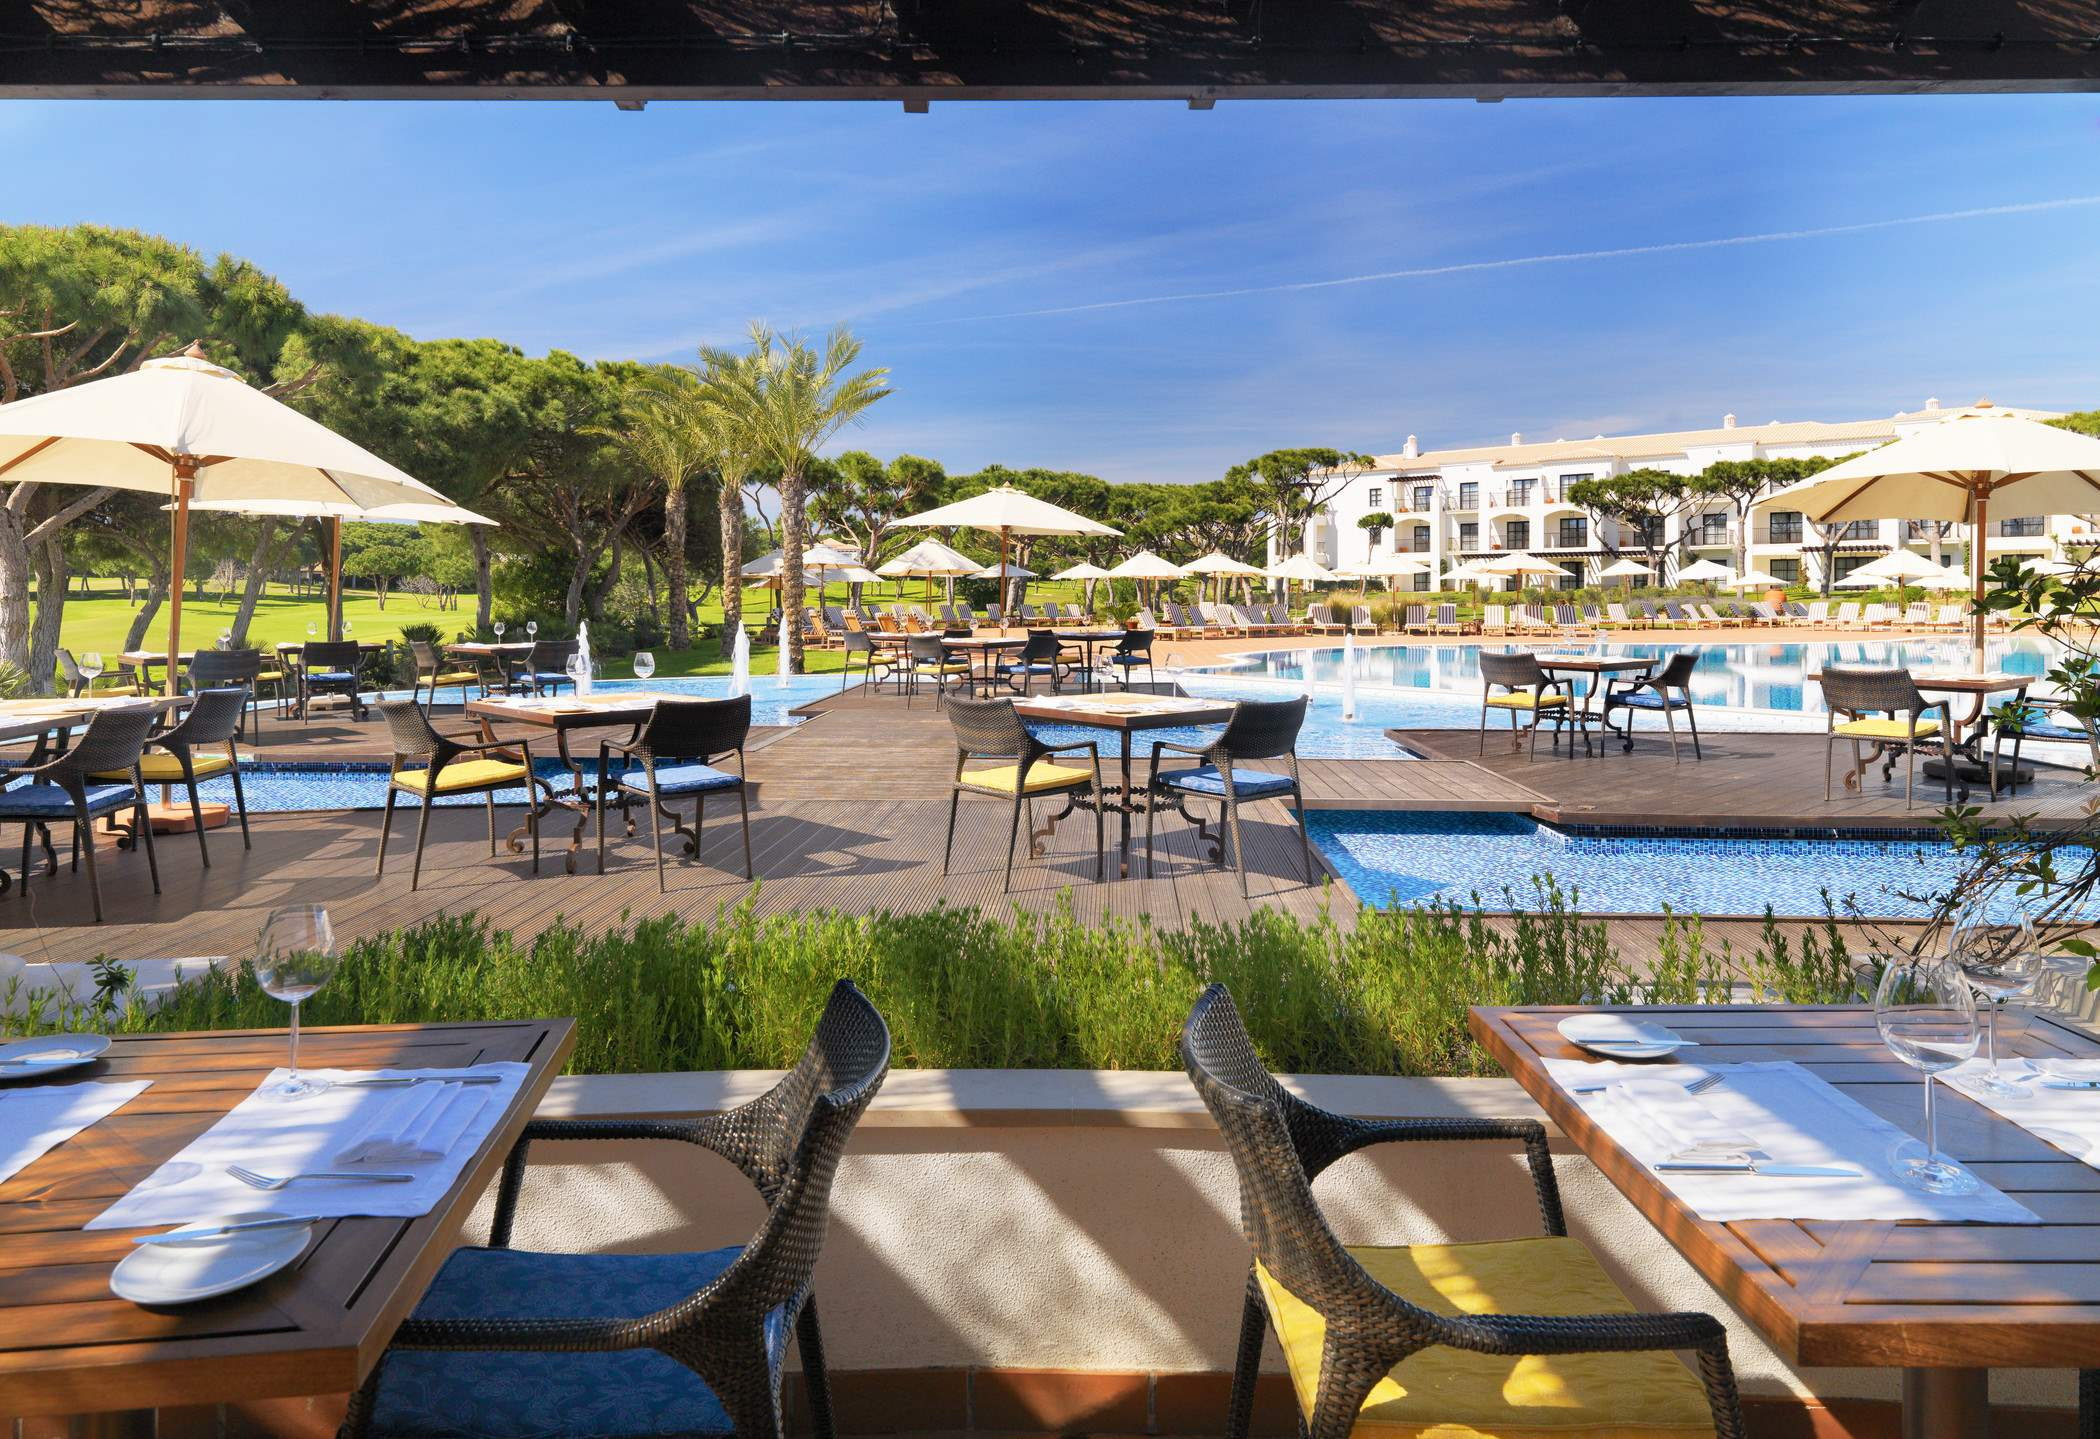 Pine Cliffs Terraces, 2 Bedroom, room only basis , 2 bedroom villa in Pine Cliffs Resort, Algarve Photo #31